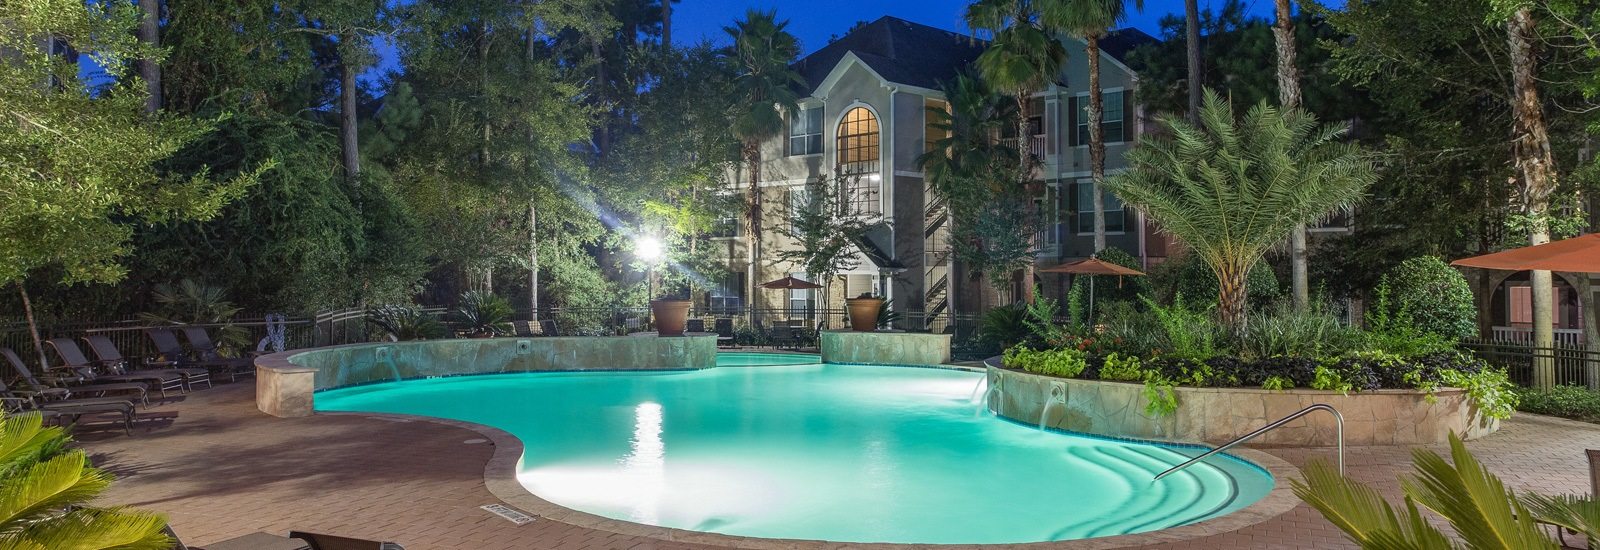 Apartments in The Woodlands TX